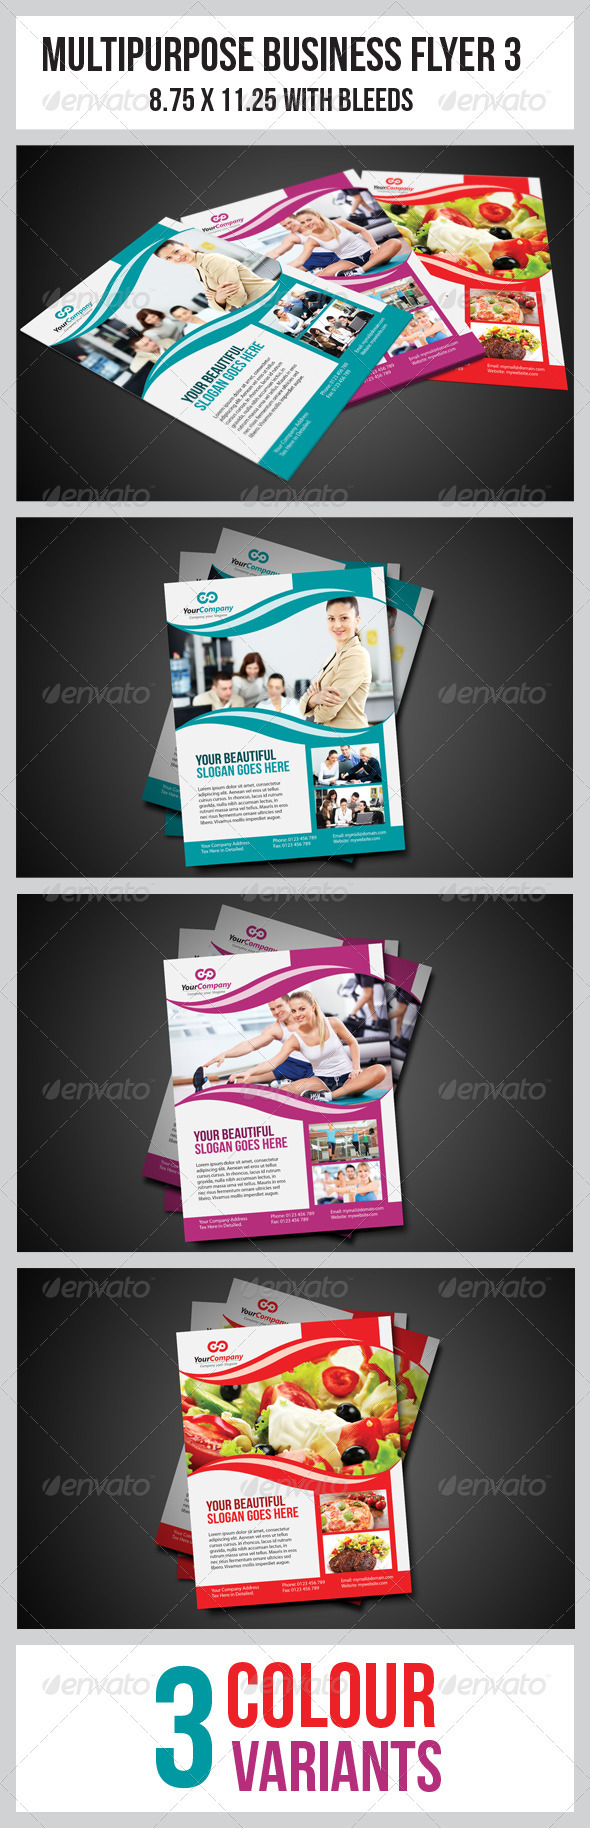 Multipurpose Business Flyer 3 - Commerce Flyers